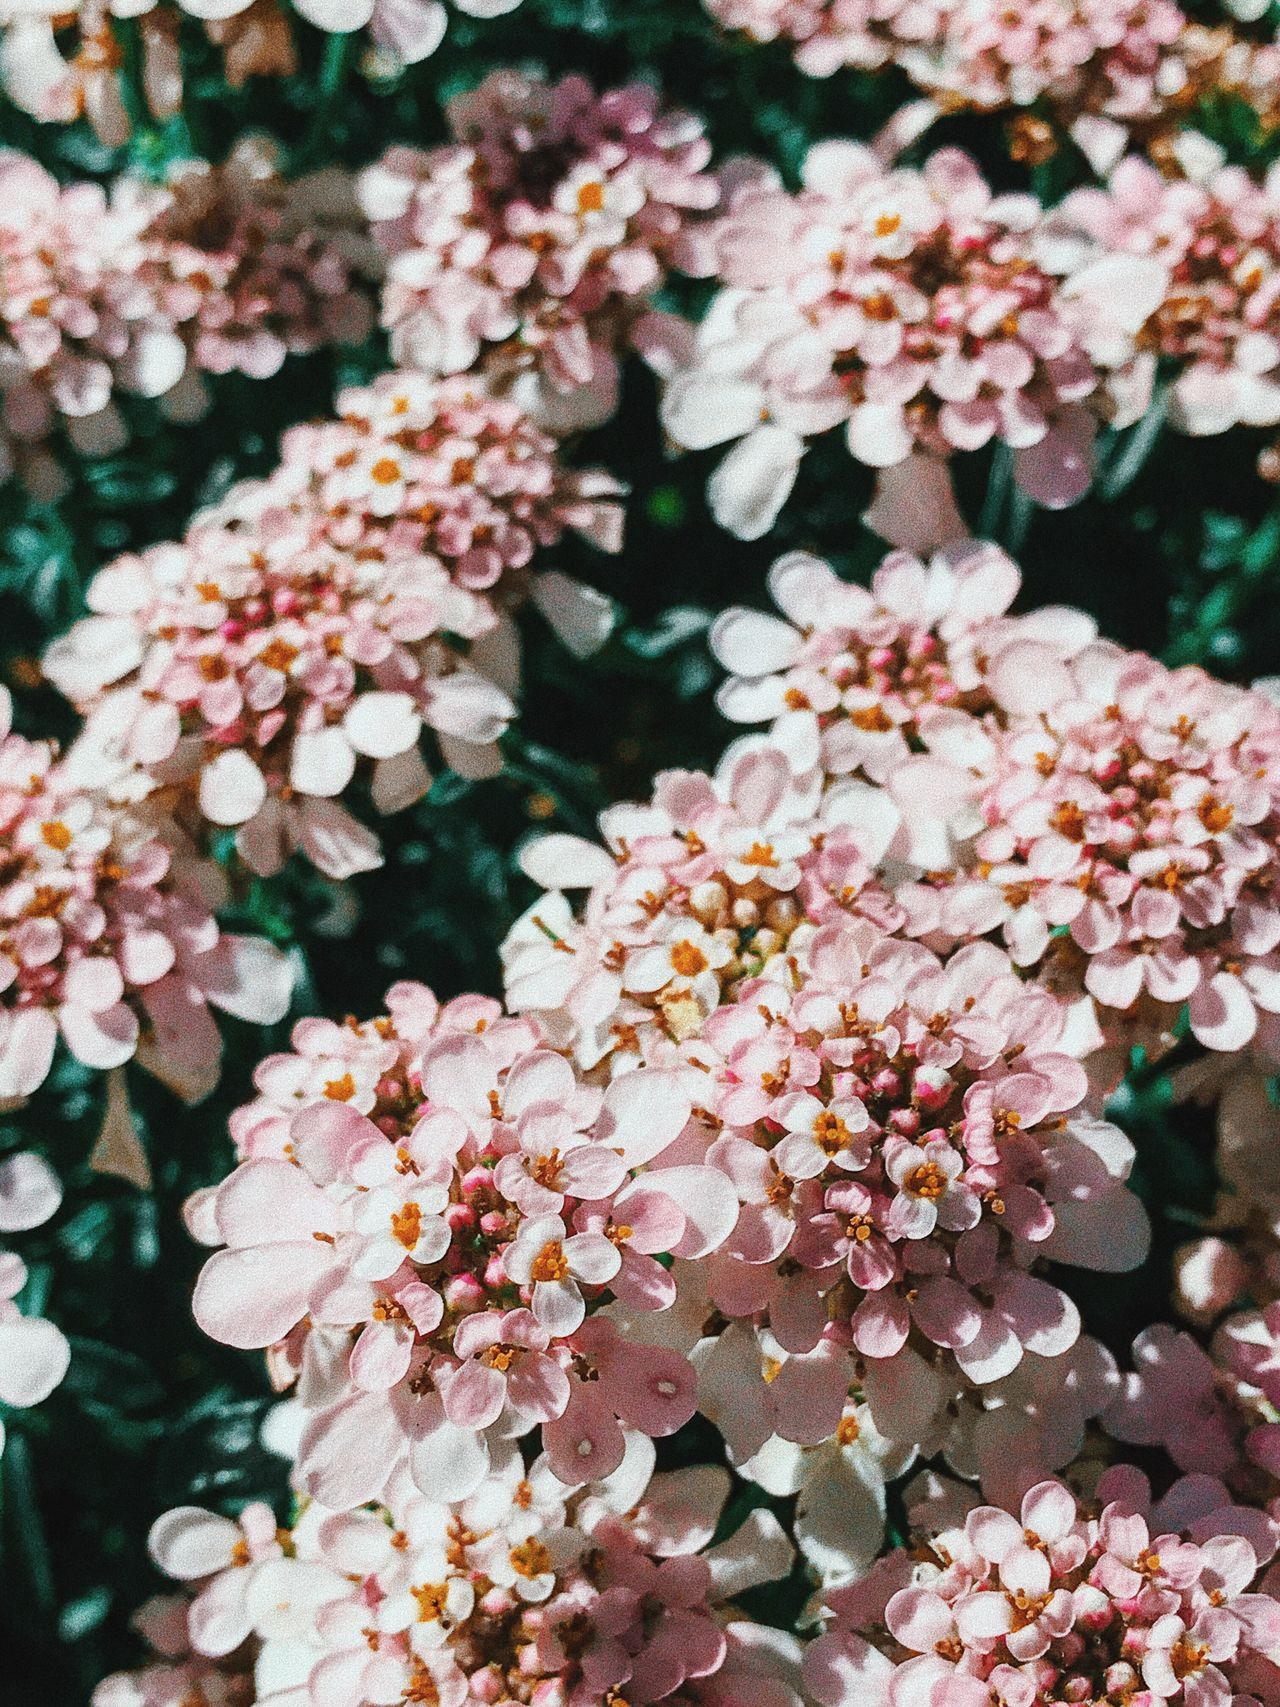 Flower Freshness Fragility Beauty In Nature Pink Color No People Nature Day Petal Focus On Foreground Close-up Growth Outdoors Plant Flower Head